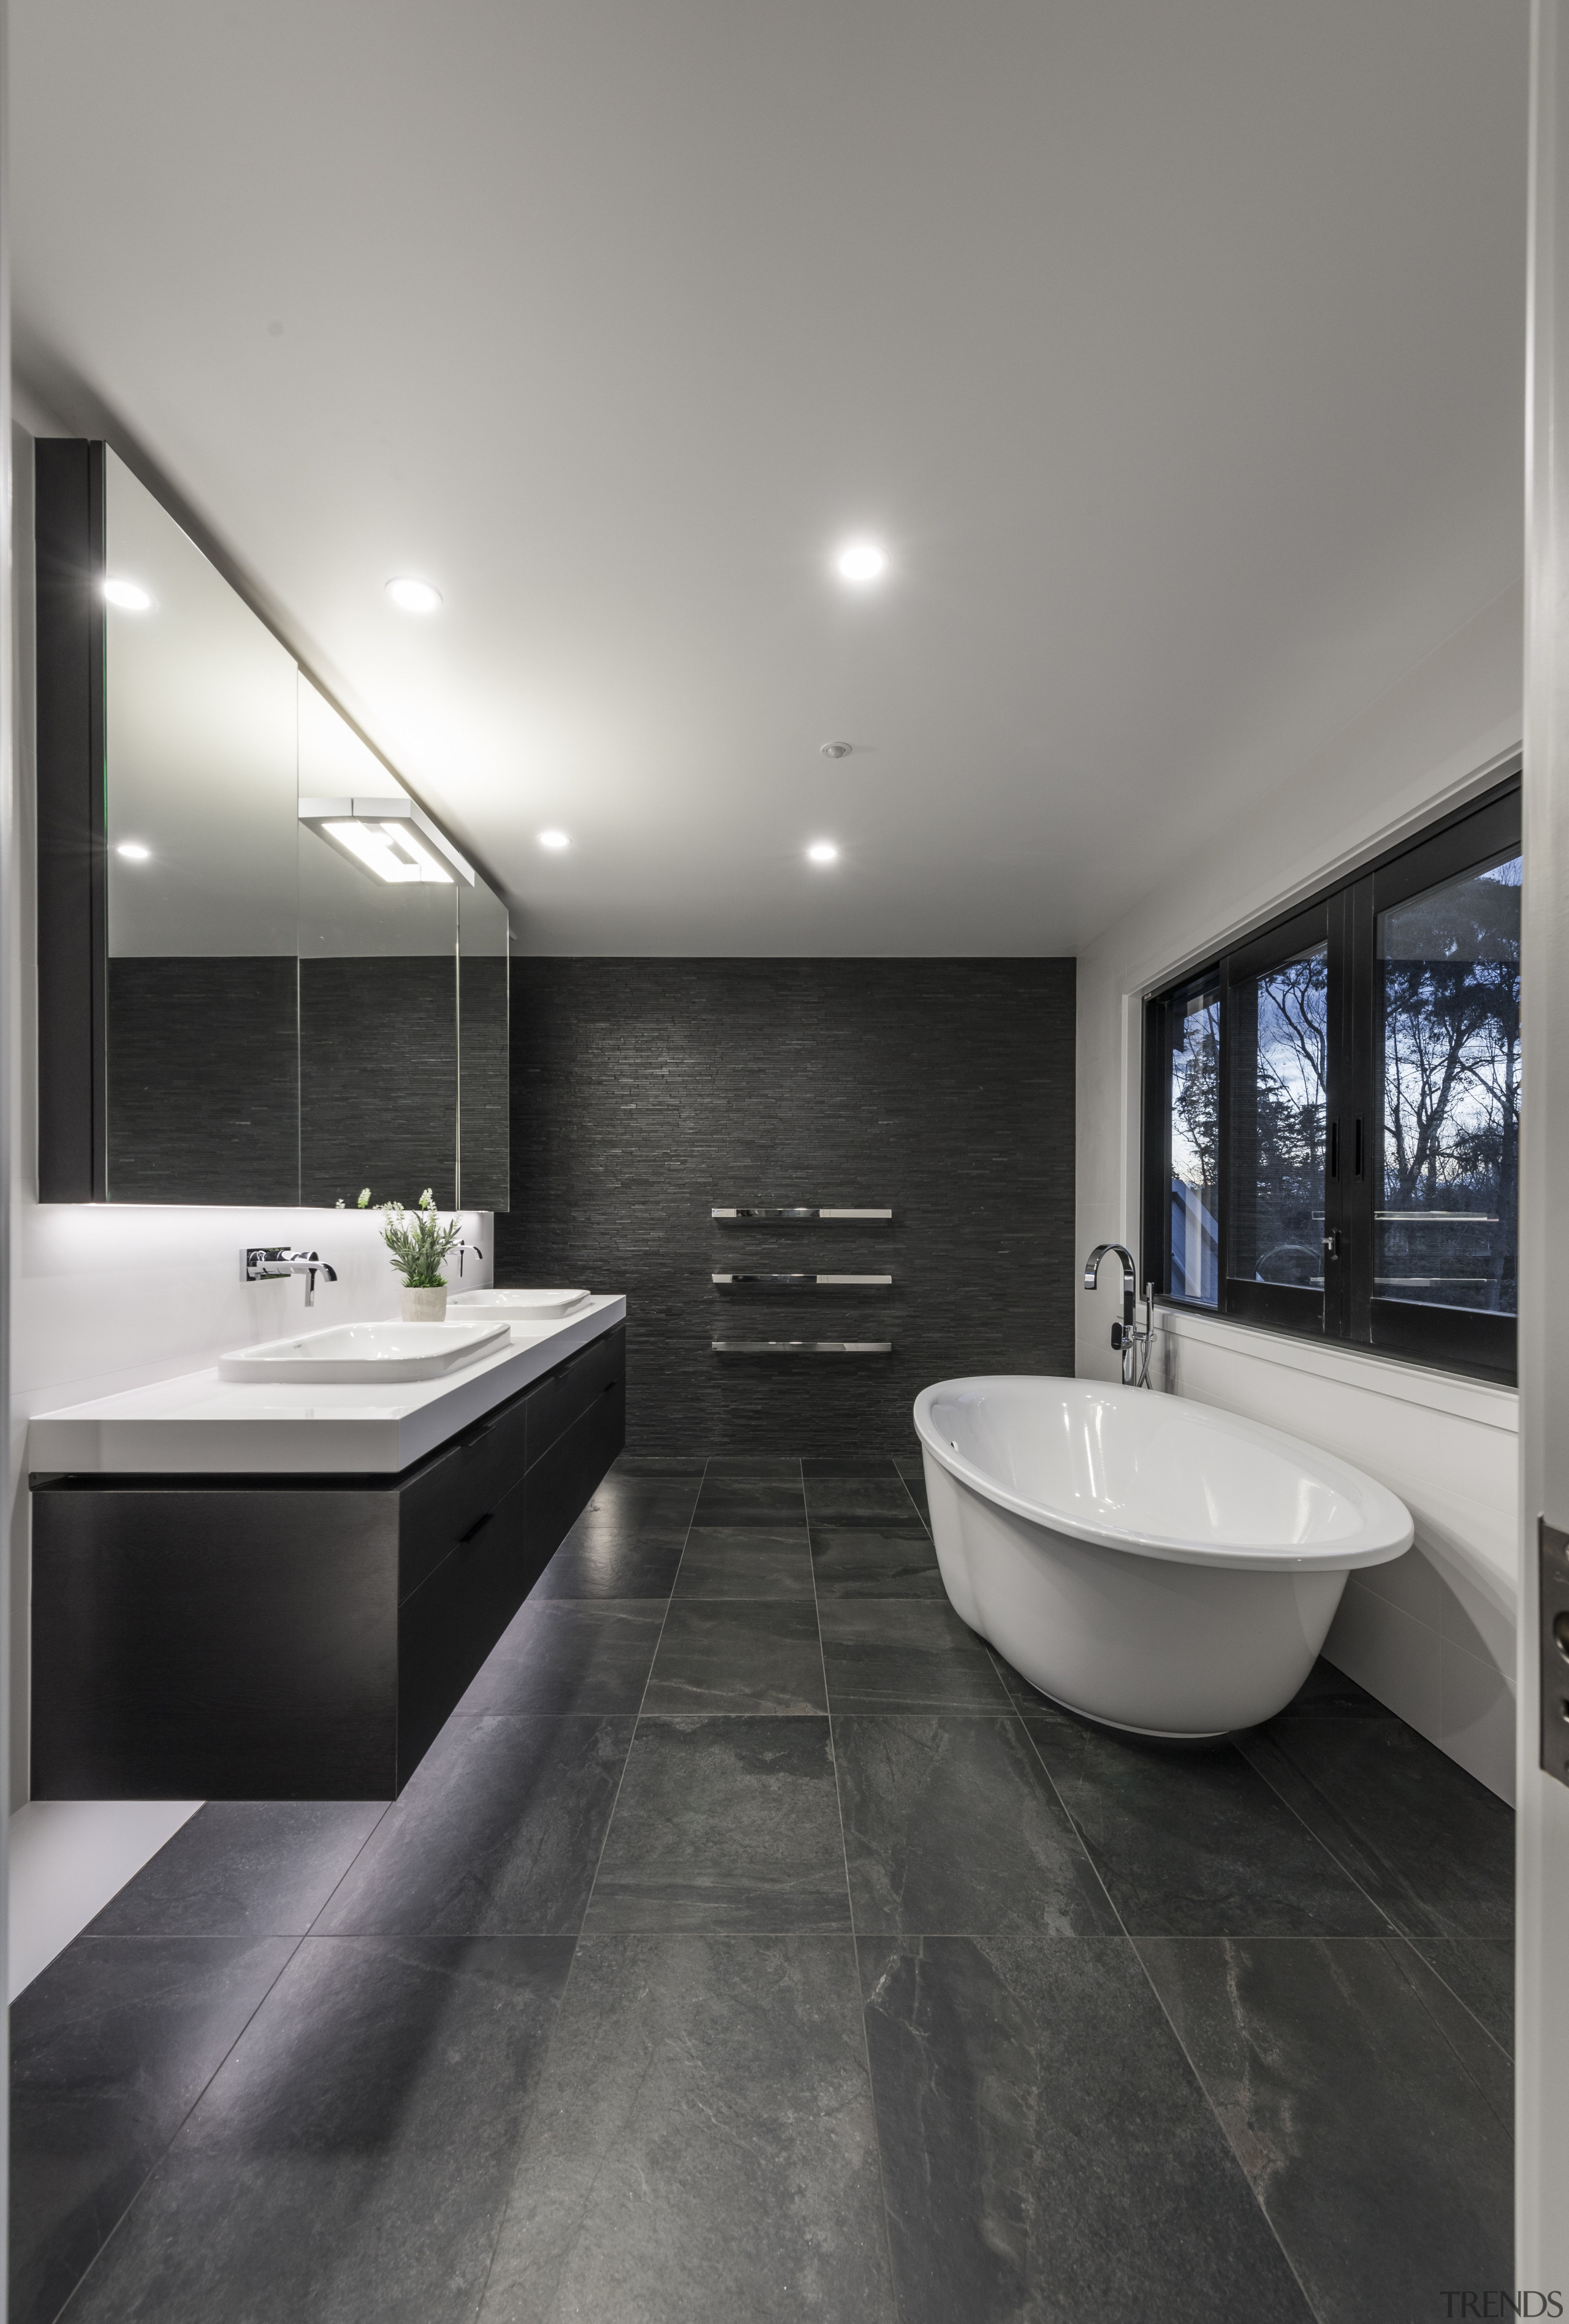 The tub is on show on entering this architecture, bathroom, ceiling, countertop, floor, flooring, house, interior design, real estate, room, sink, tile, wall, wood flooring, gray, black